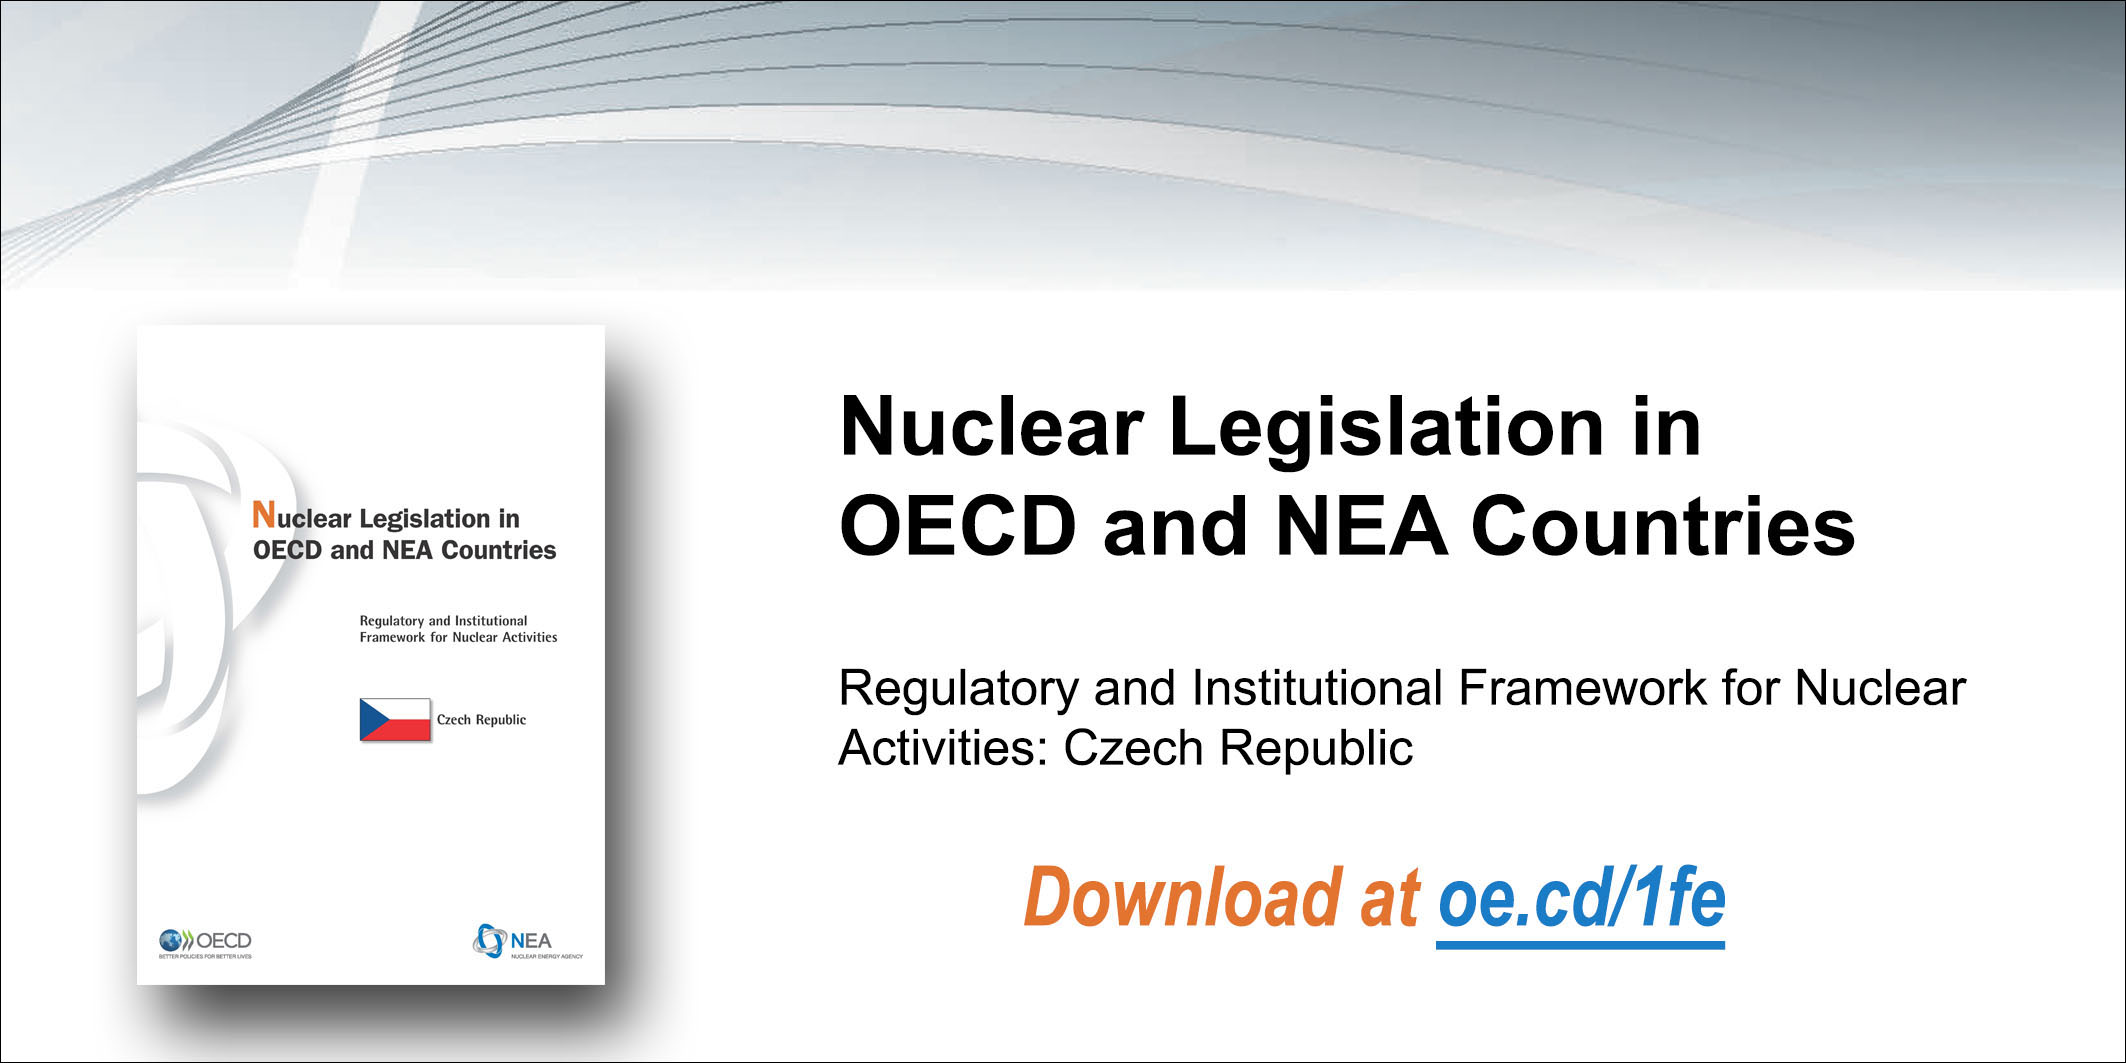 Regulatory and Institutional Framework for Nuclear Activities in the Czech Republic